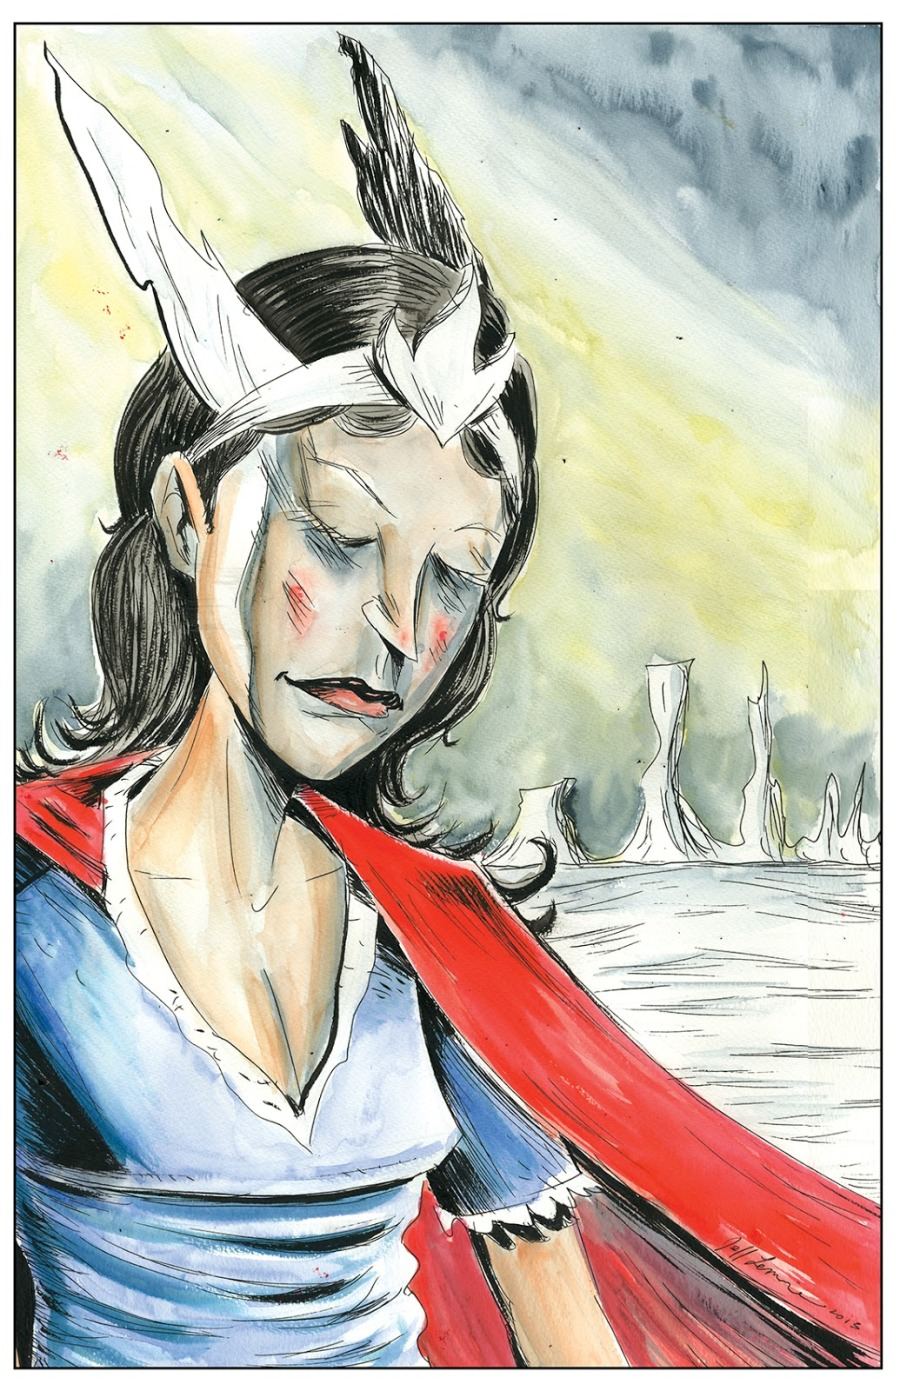 Nelvana by Jeff Lemire